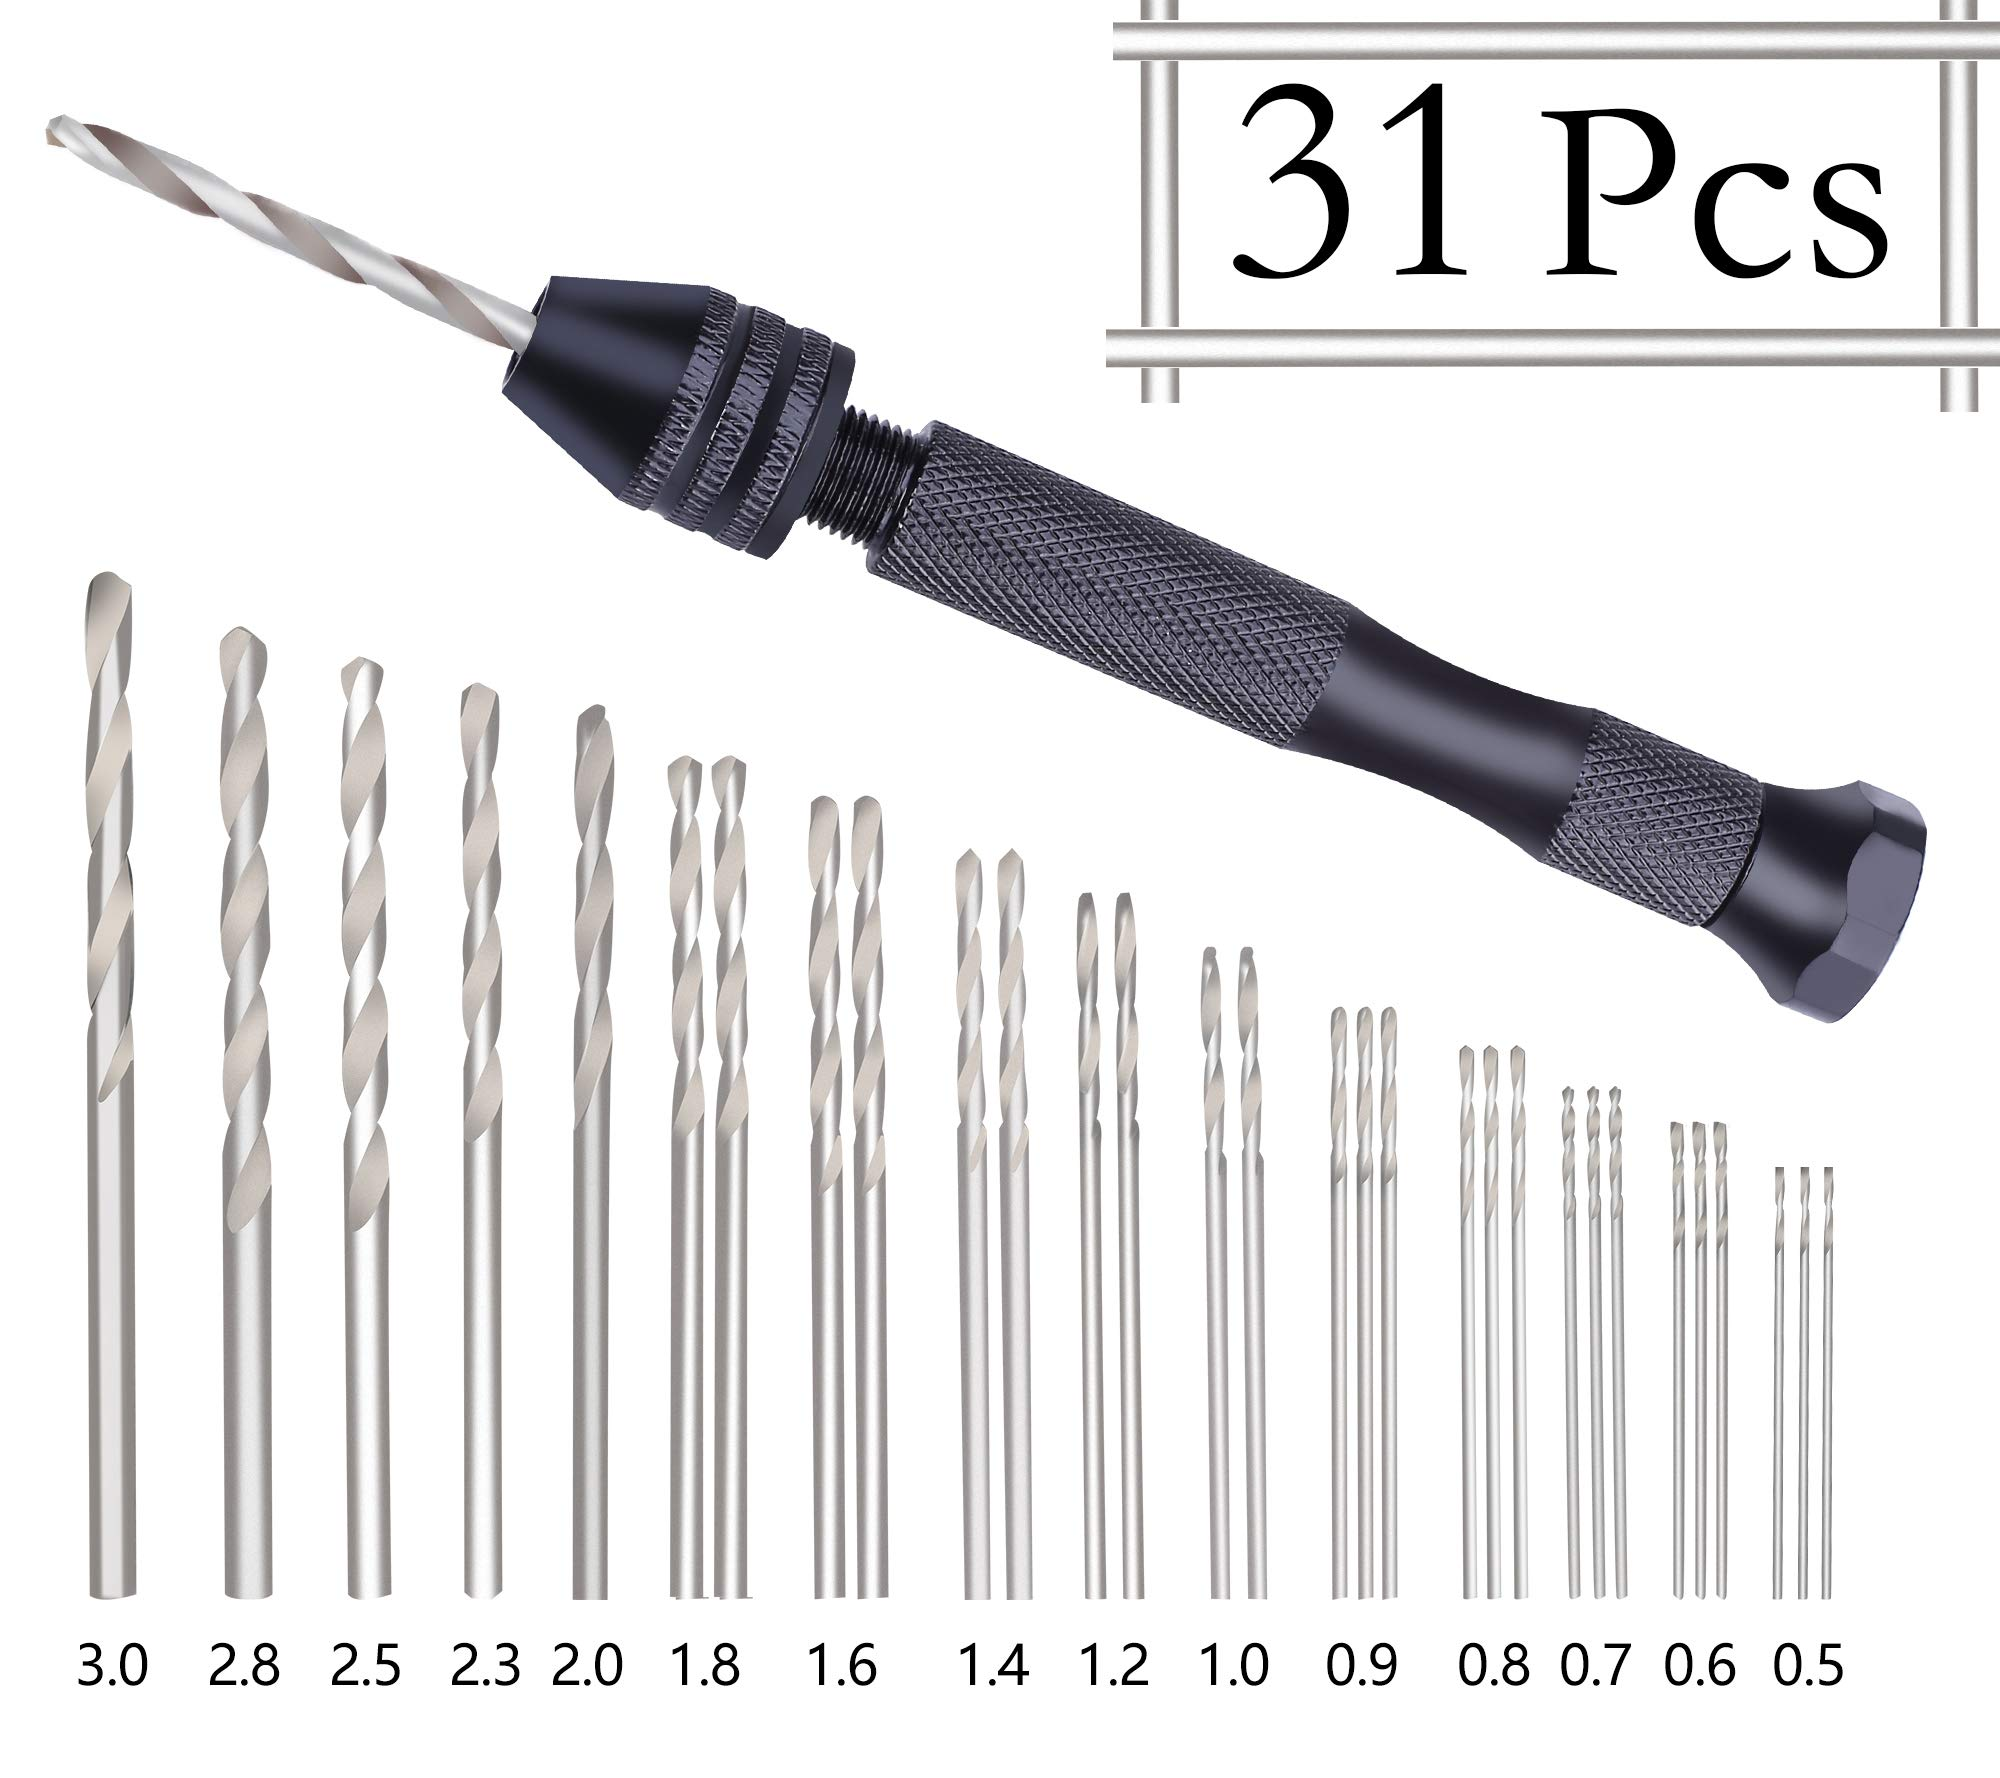 Precision Pin Vise Hobby Drill with Model Twist Hand Drill Bits Set for DIY Drilling Tool 31 Pieces by LnBirch